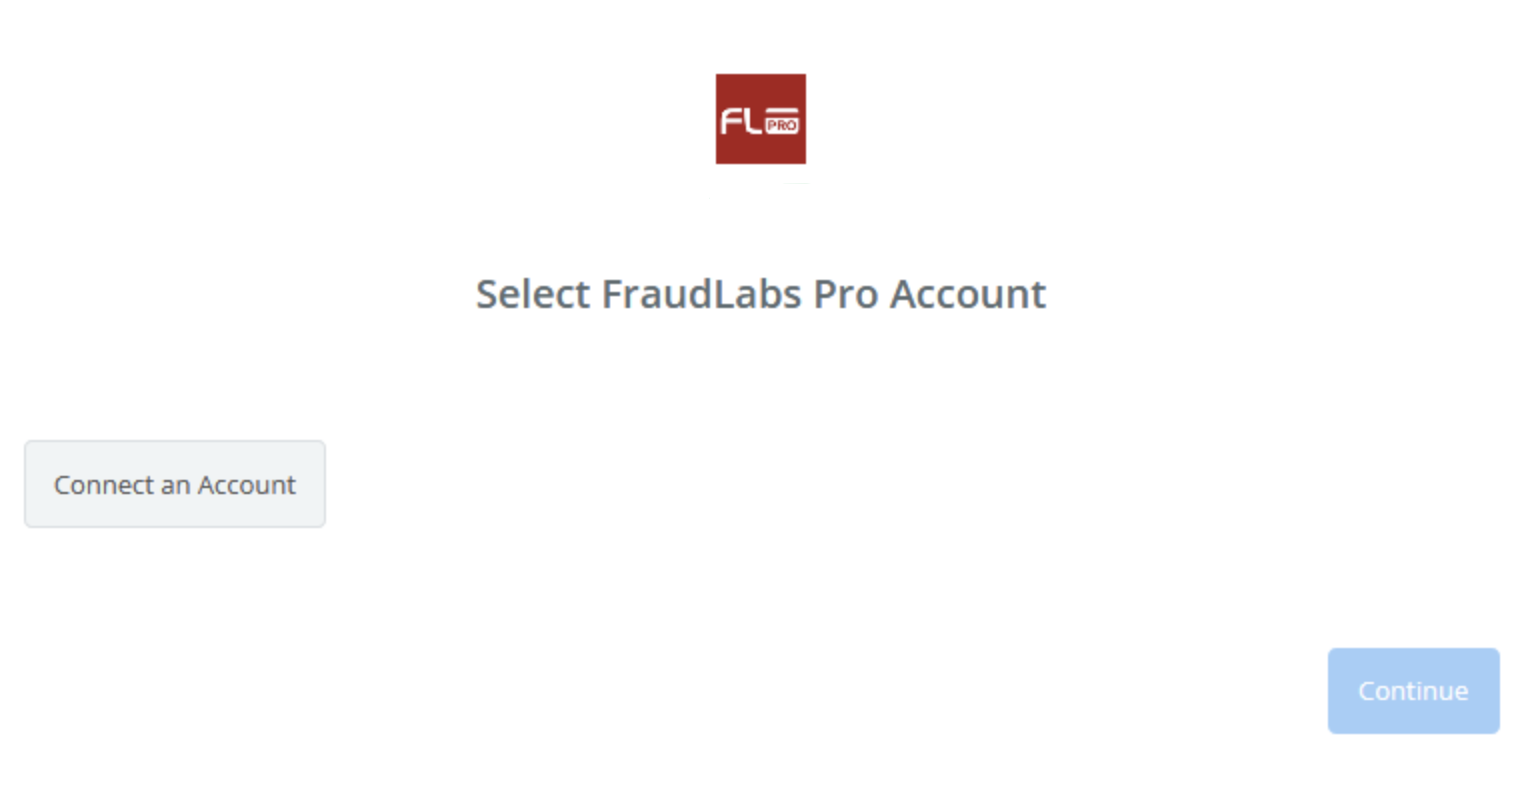 Click to connect FraudLabs Pro